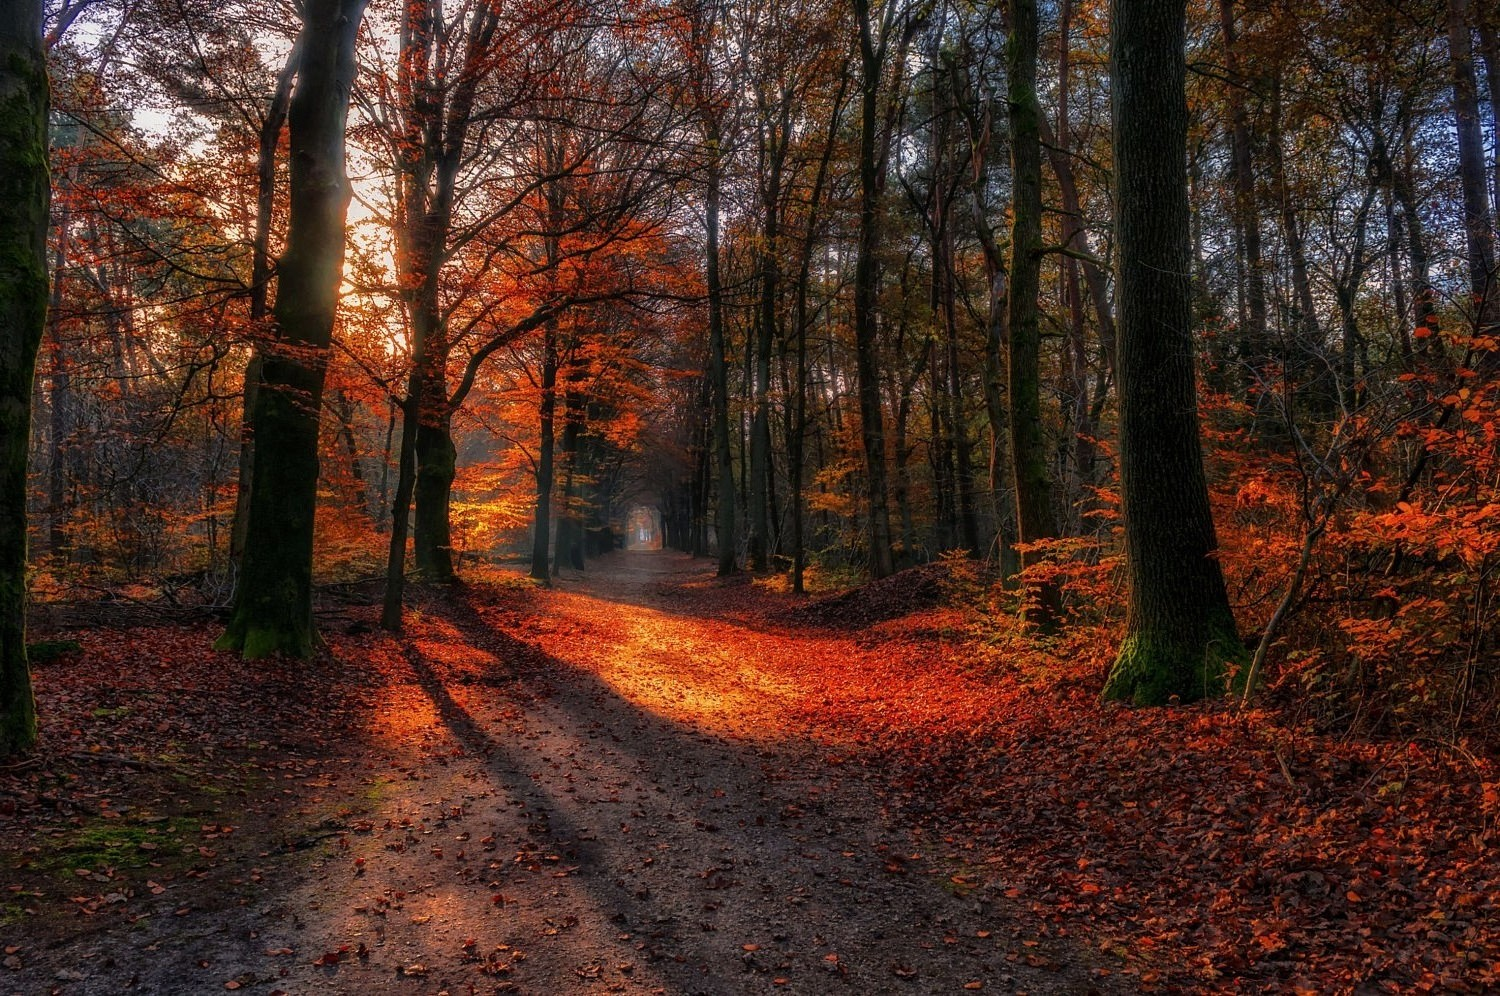 Desktop Wallpaper Fall Leaves Landscape Nature Path Fall Forest Red Leaves